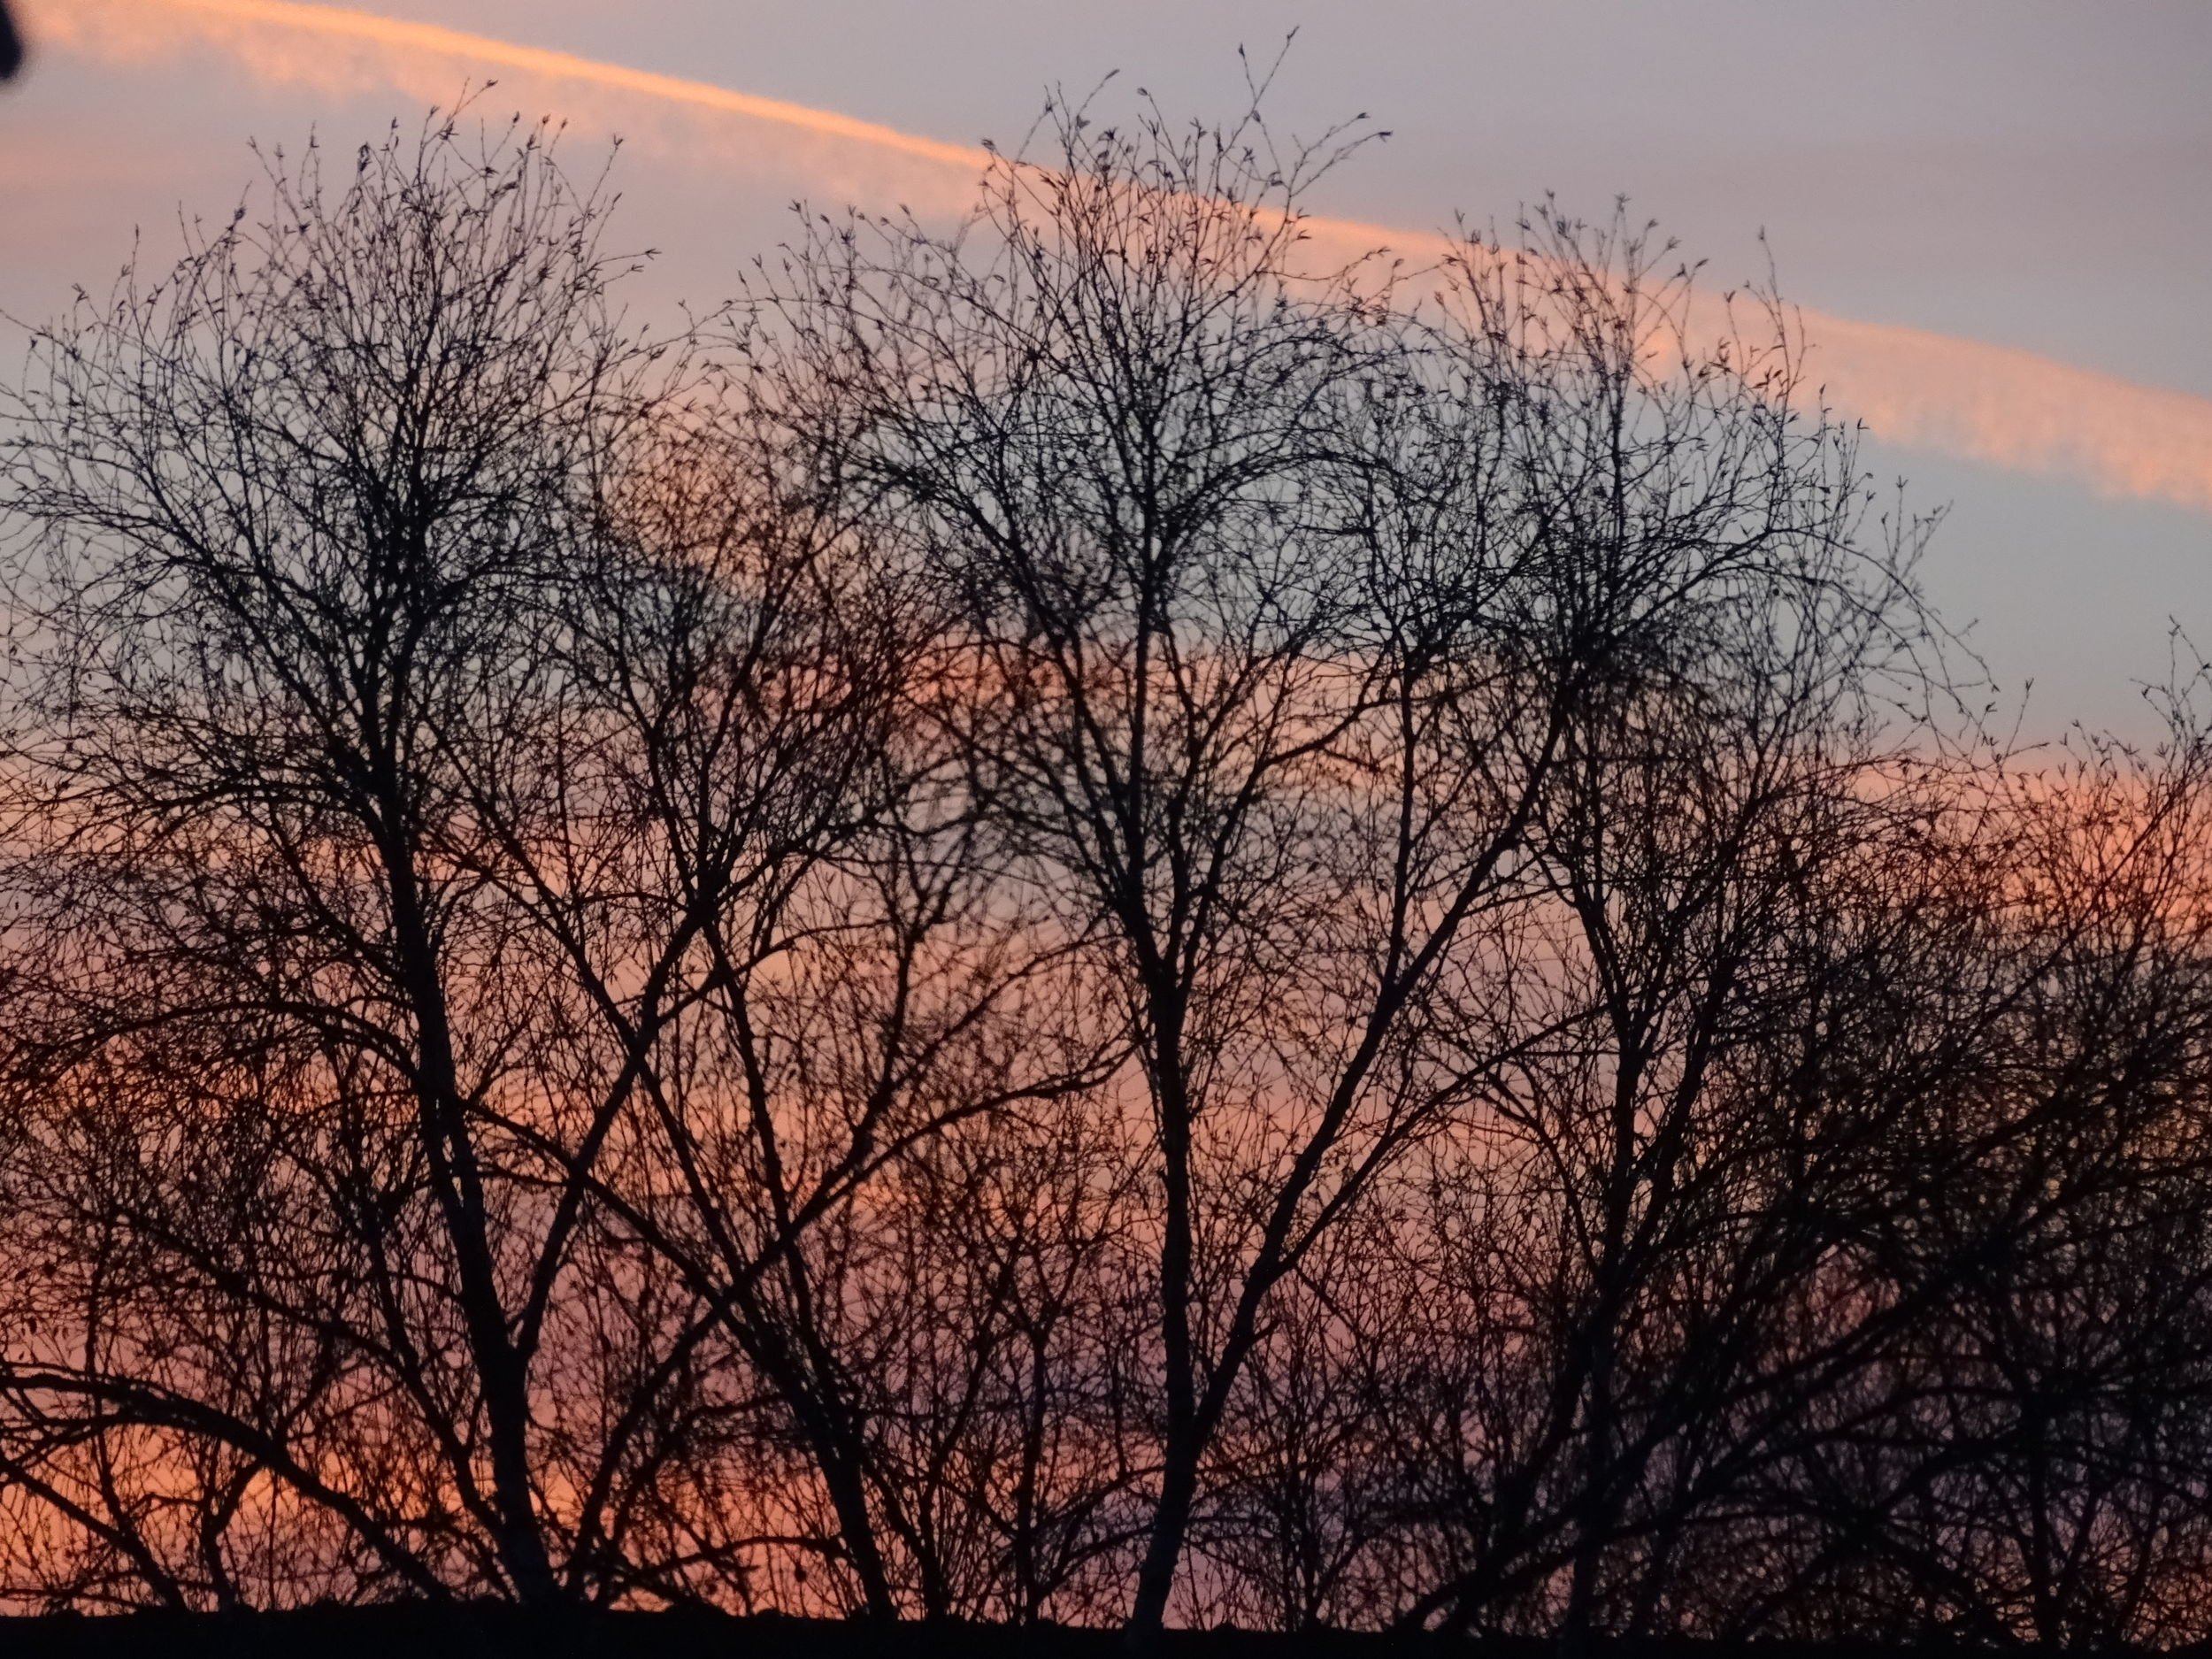 Sunset Bare Tree Tree Sky Silhouette Dusk Branch Nature Beauty In Nature No People Outdoors Low Angle View EyeEmNewHere EyeEm Selects EyeEm Best Shots Vacations No Filter The Week On EyeEm Scenics Multi Colored Beauty Day Close-up Perspectives On Nature Be. Ready.